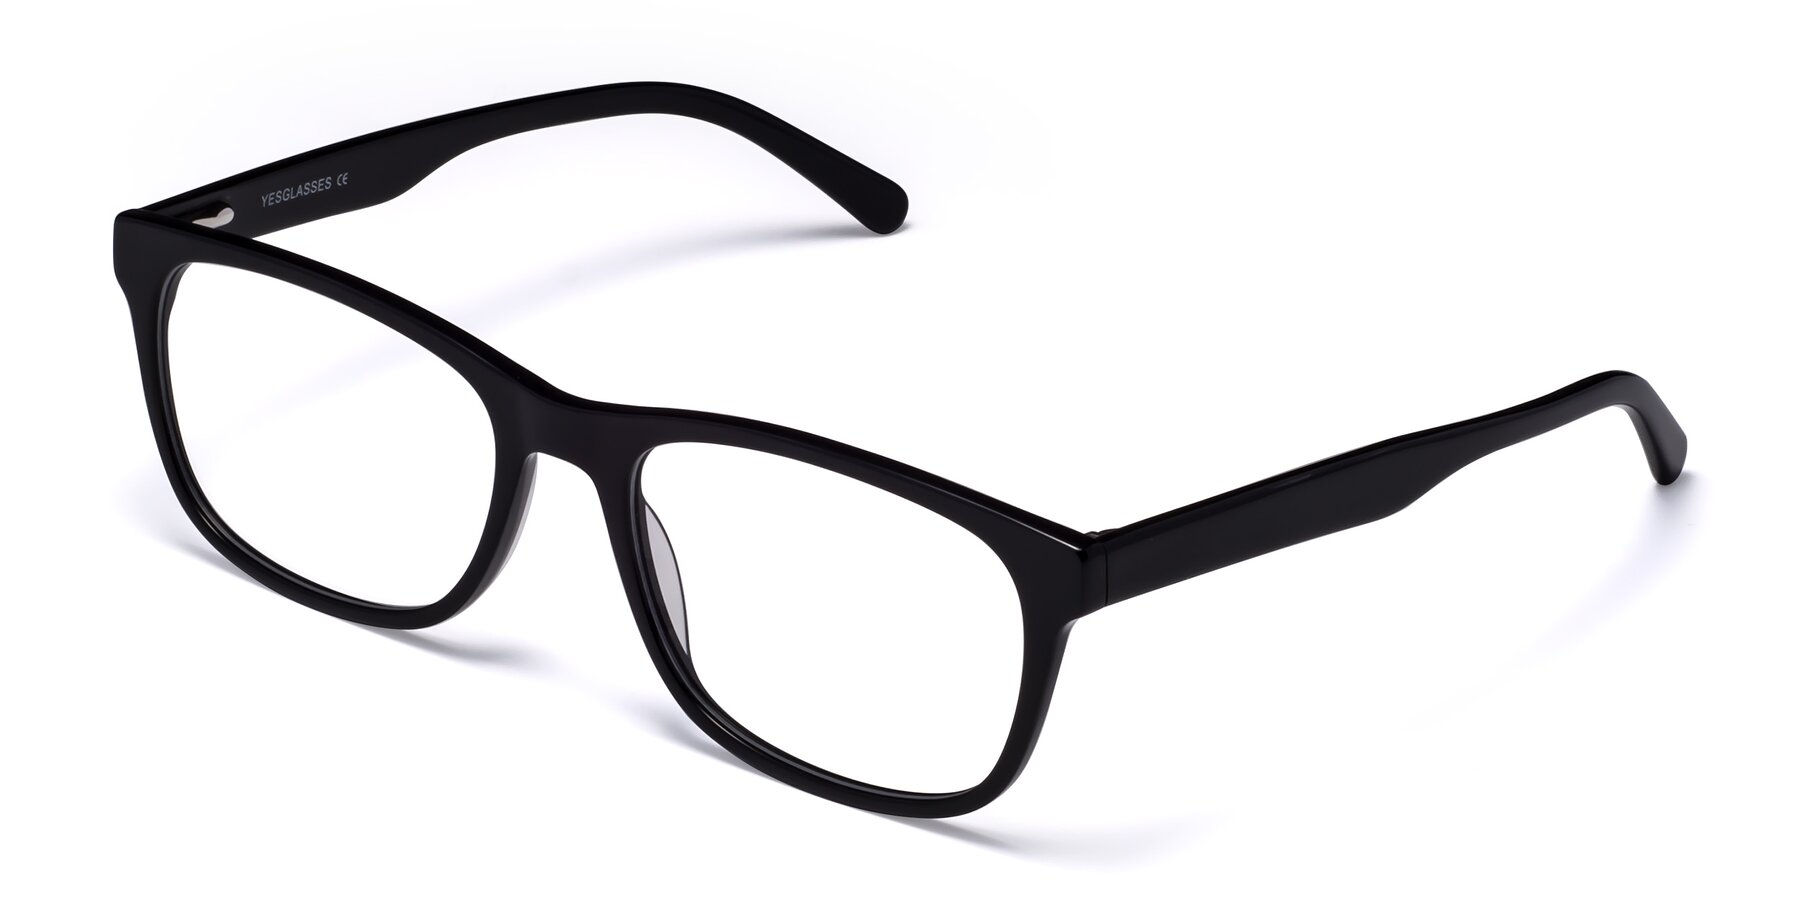 Angle of Navarro in Black with Clear Eyeglass Lenses